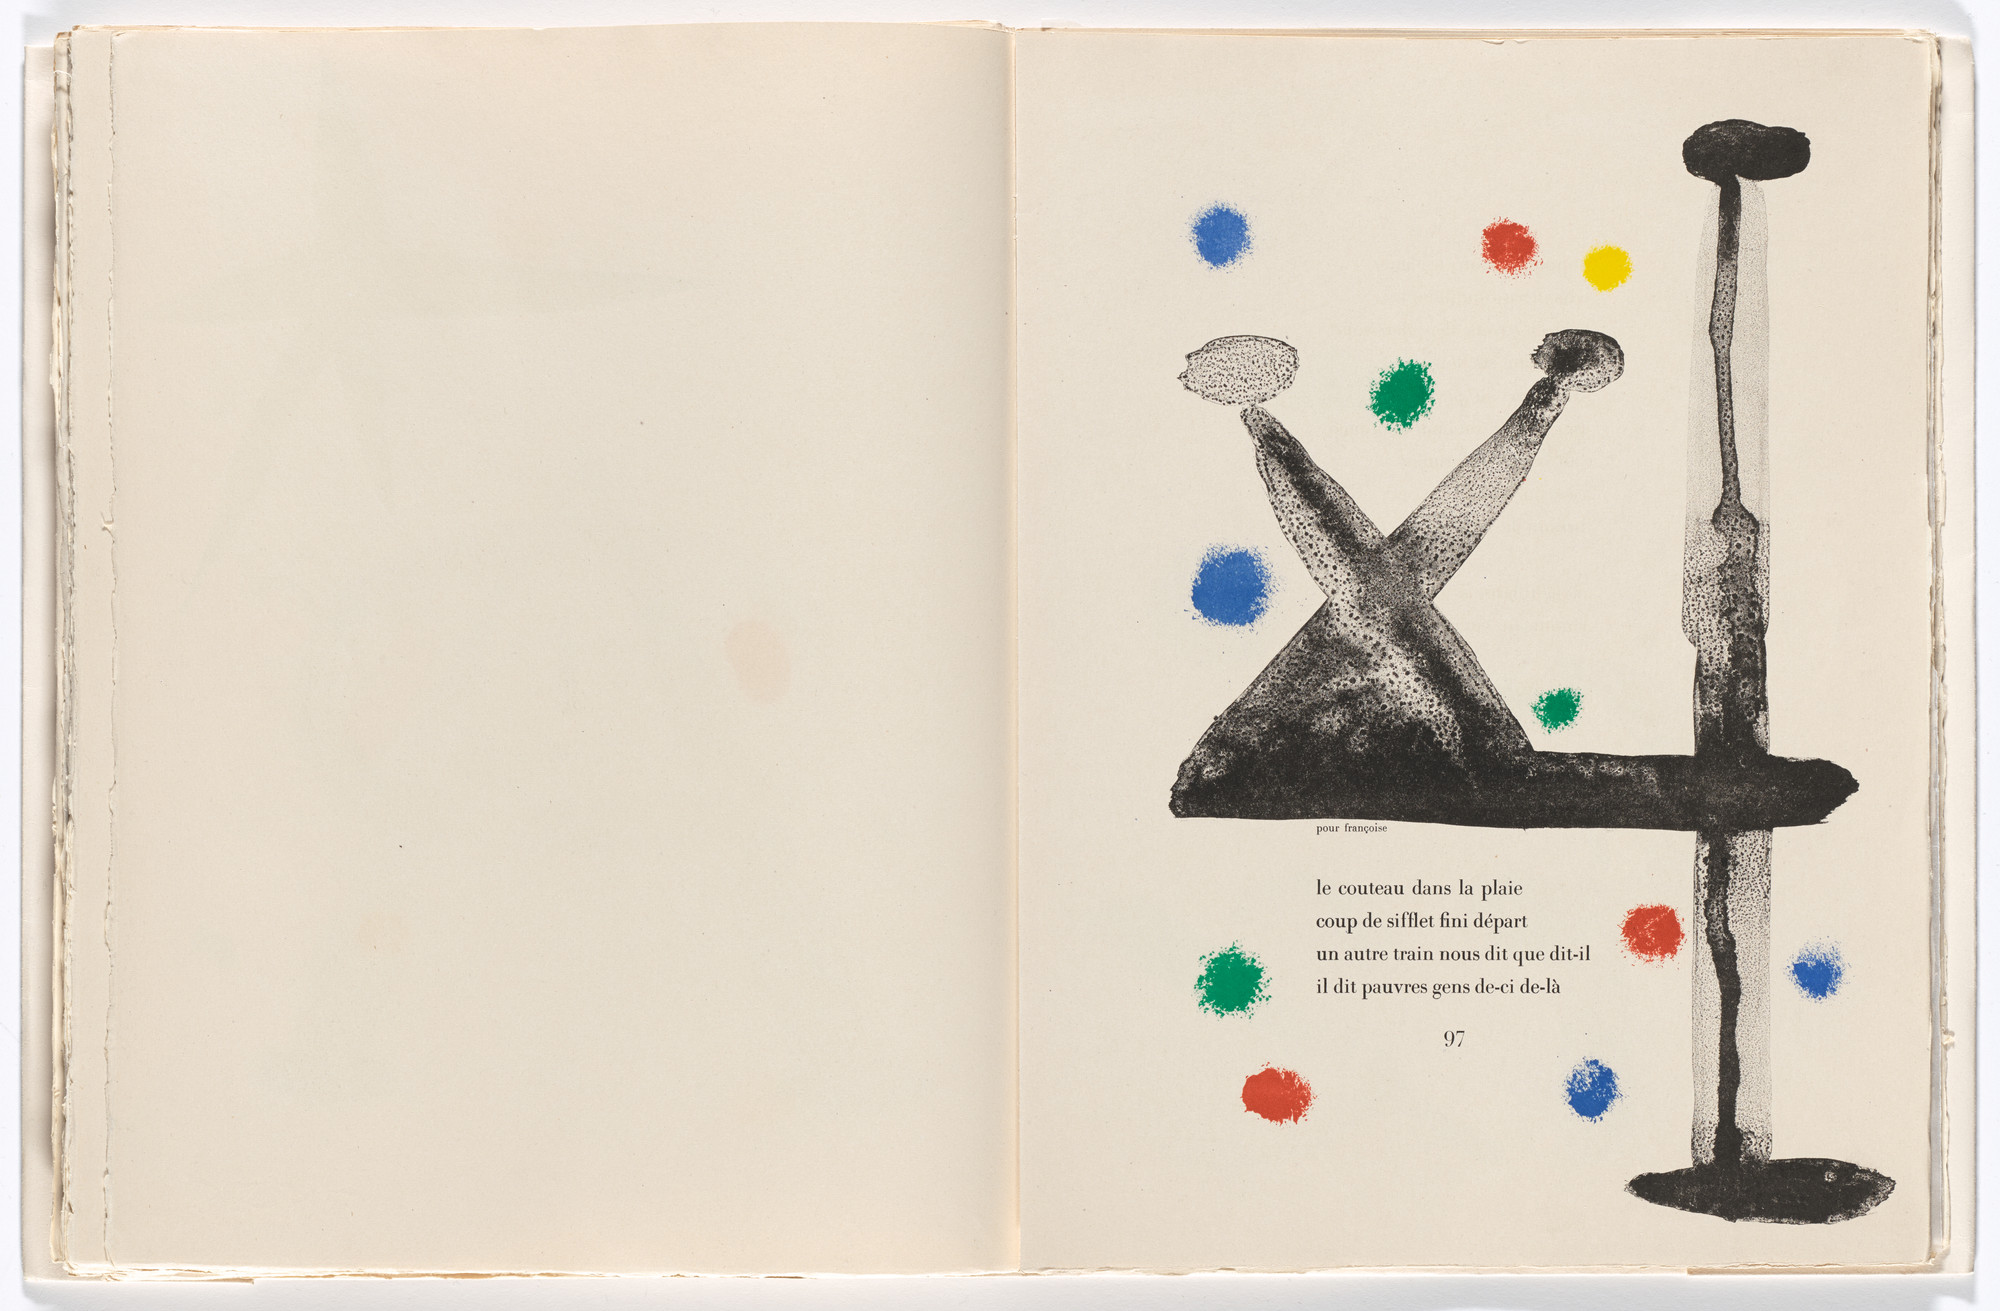 Joan Miró. In-text plate (page 97) from Parler seul (Speaking Alone). 1948–50, published 1950